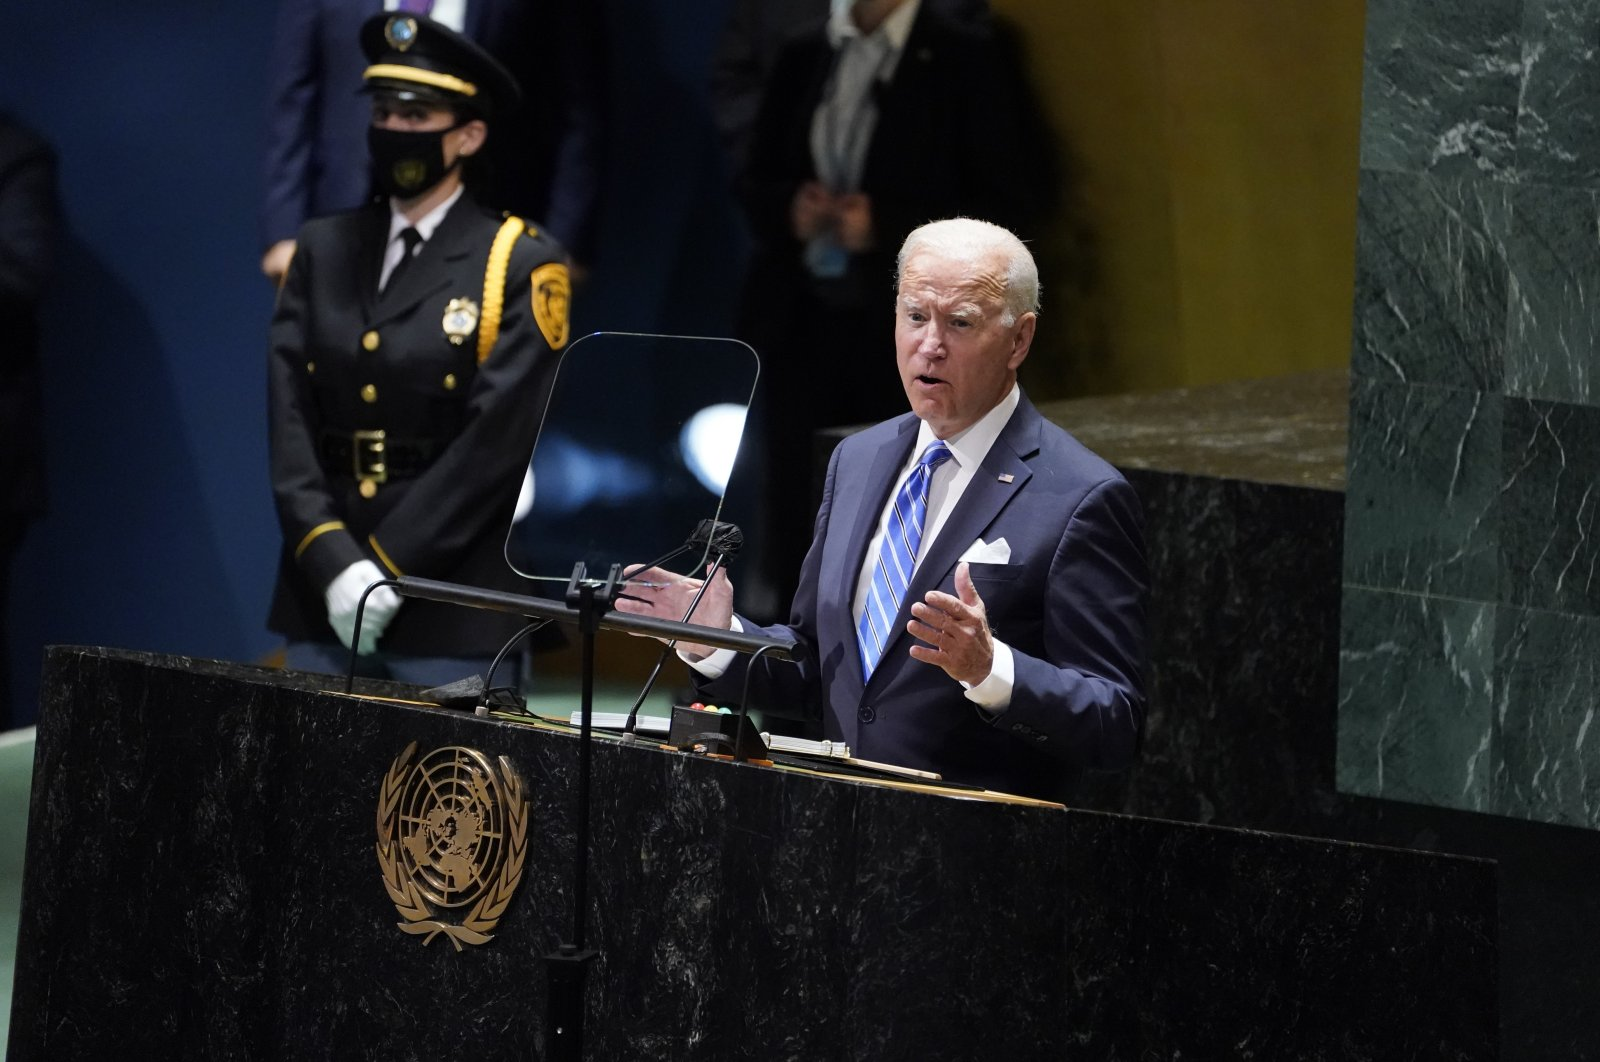 U.S. President Joe Biden delivers remarks to the 76th Session of the United Nations General Assembly, New York, U.S., Tuesday, Sept. 21, 2021. (AP Photo)